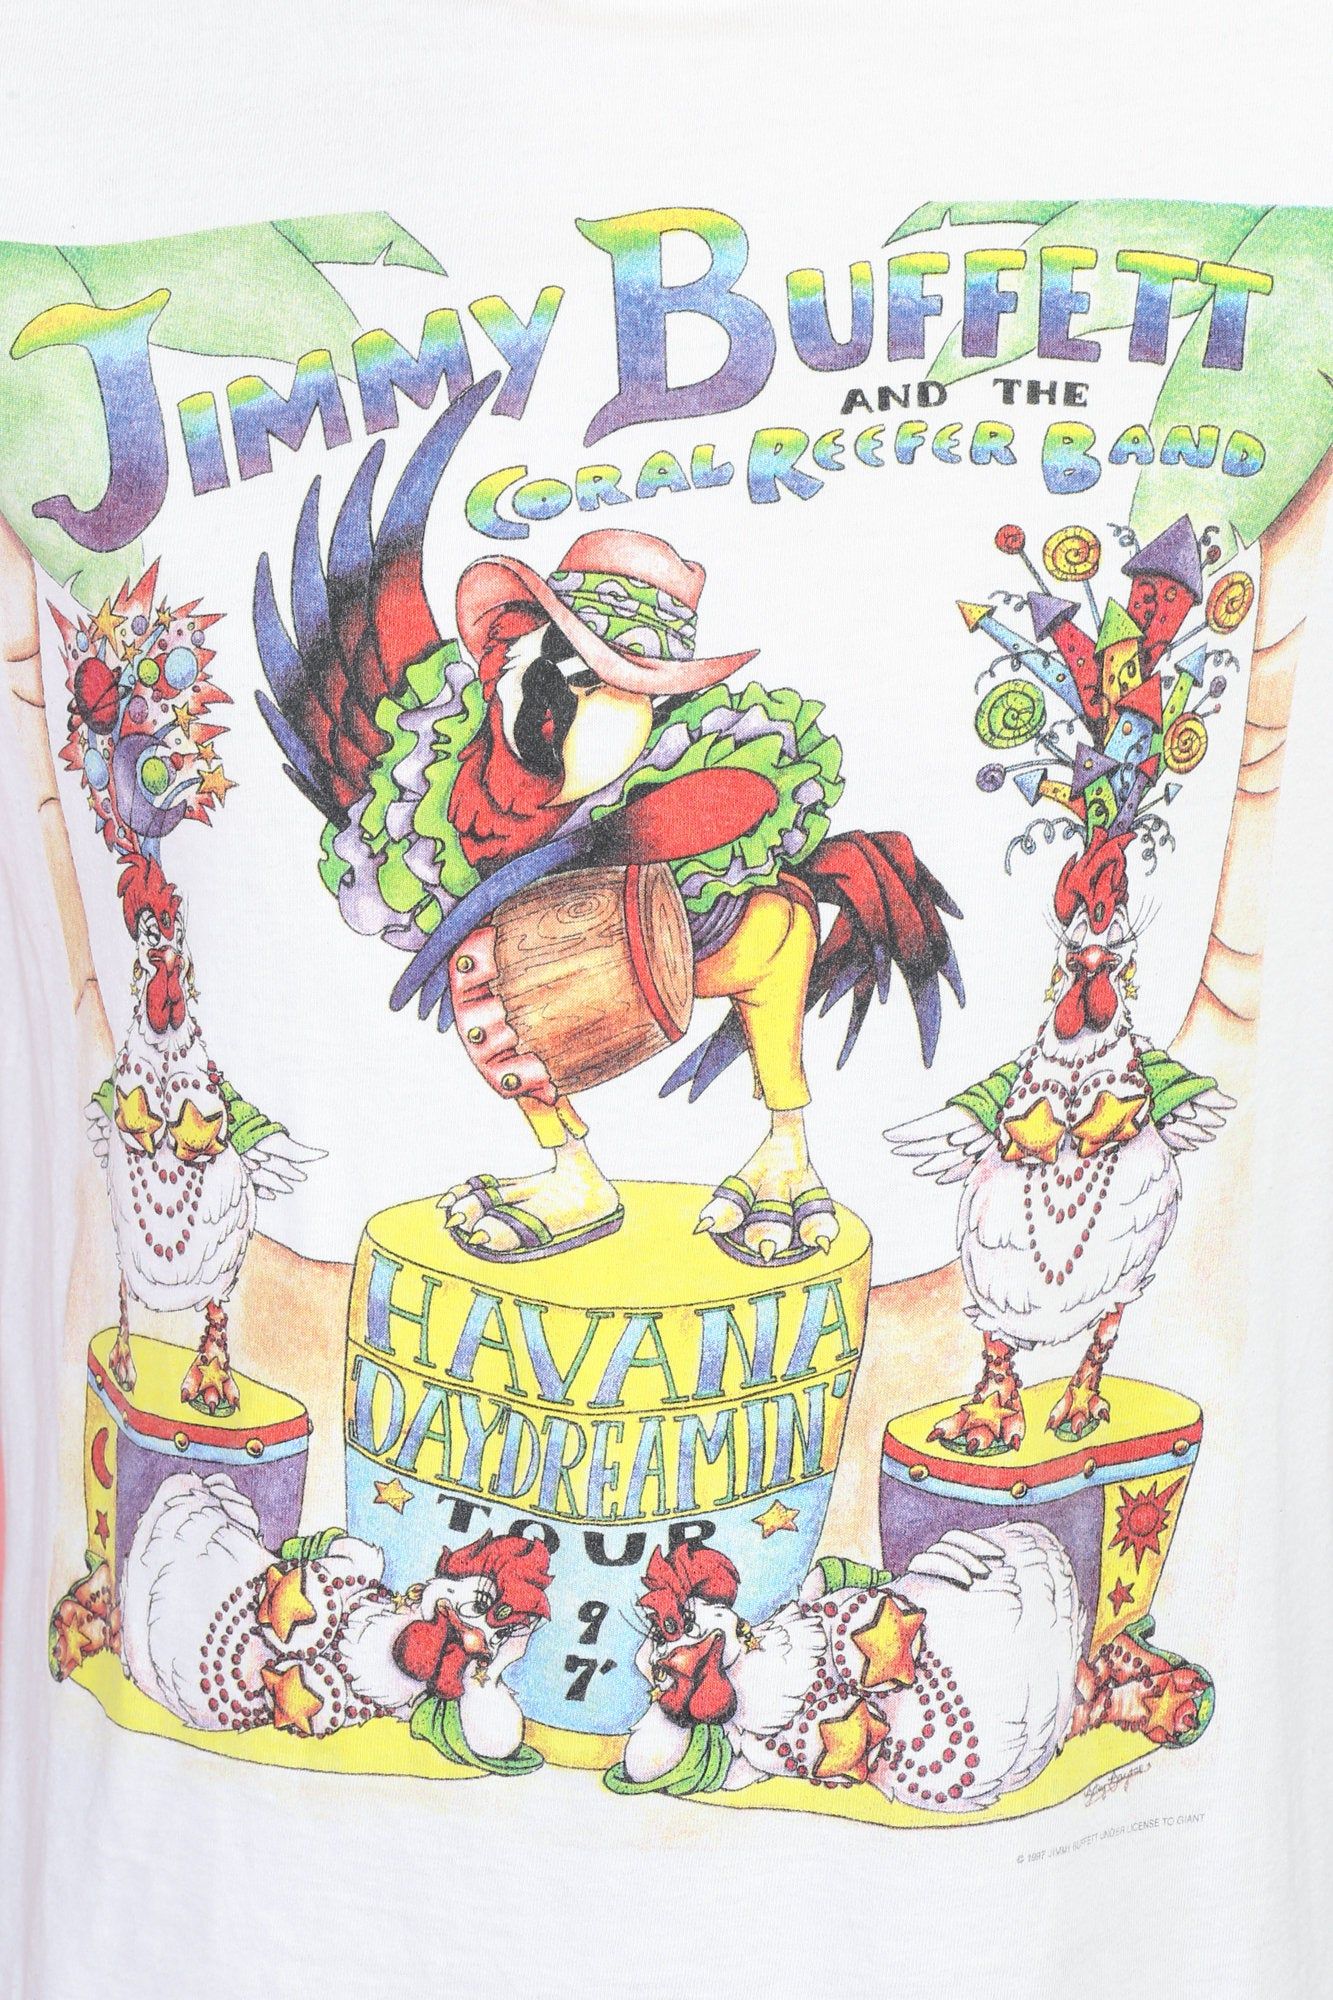 1997 Jimmy Buffett Havana Daydreamin' Tour T Shirt - Large